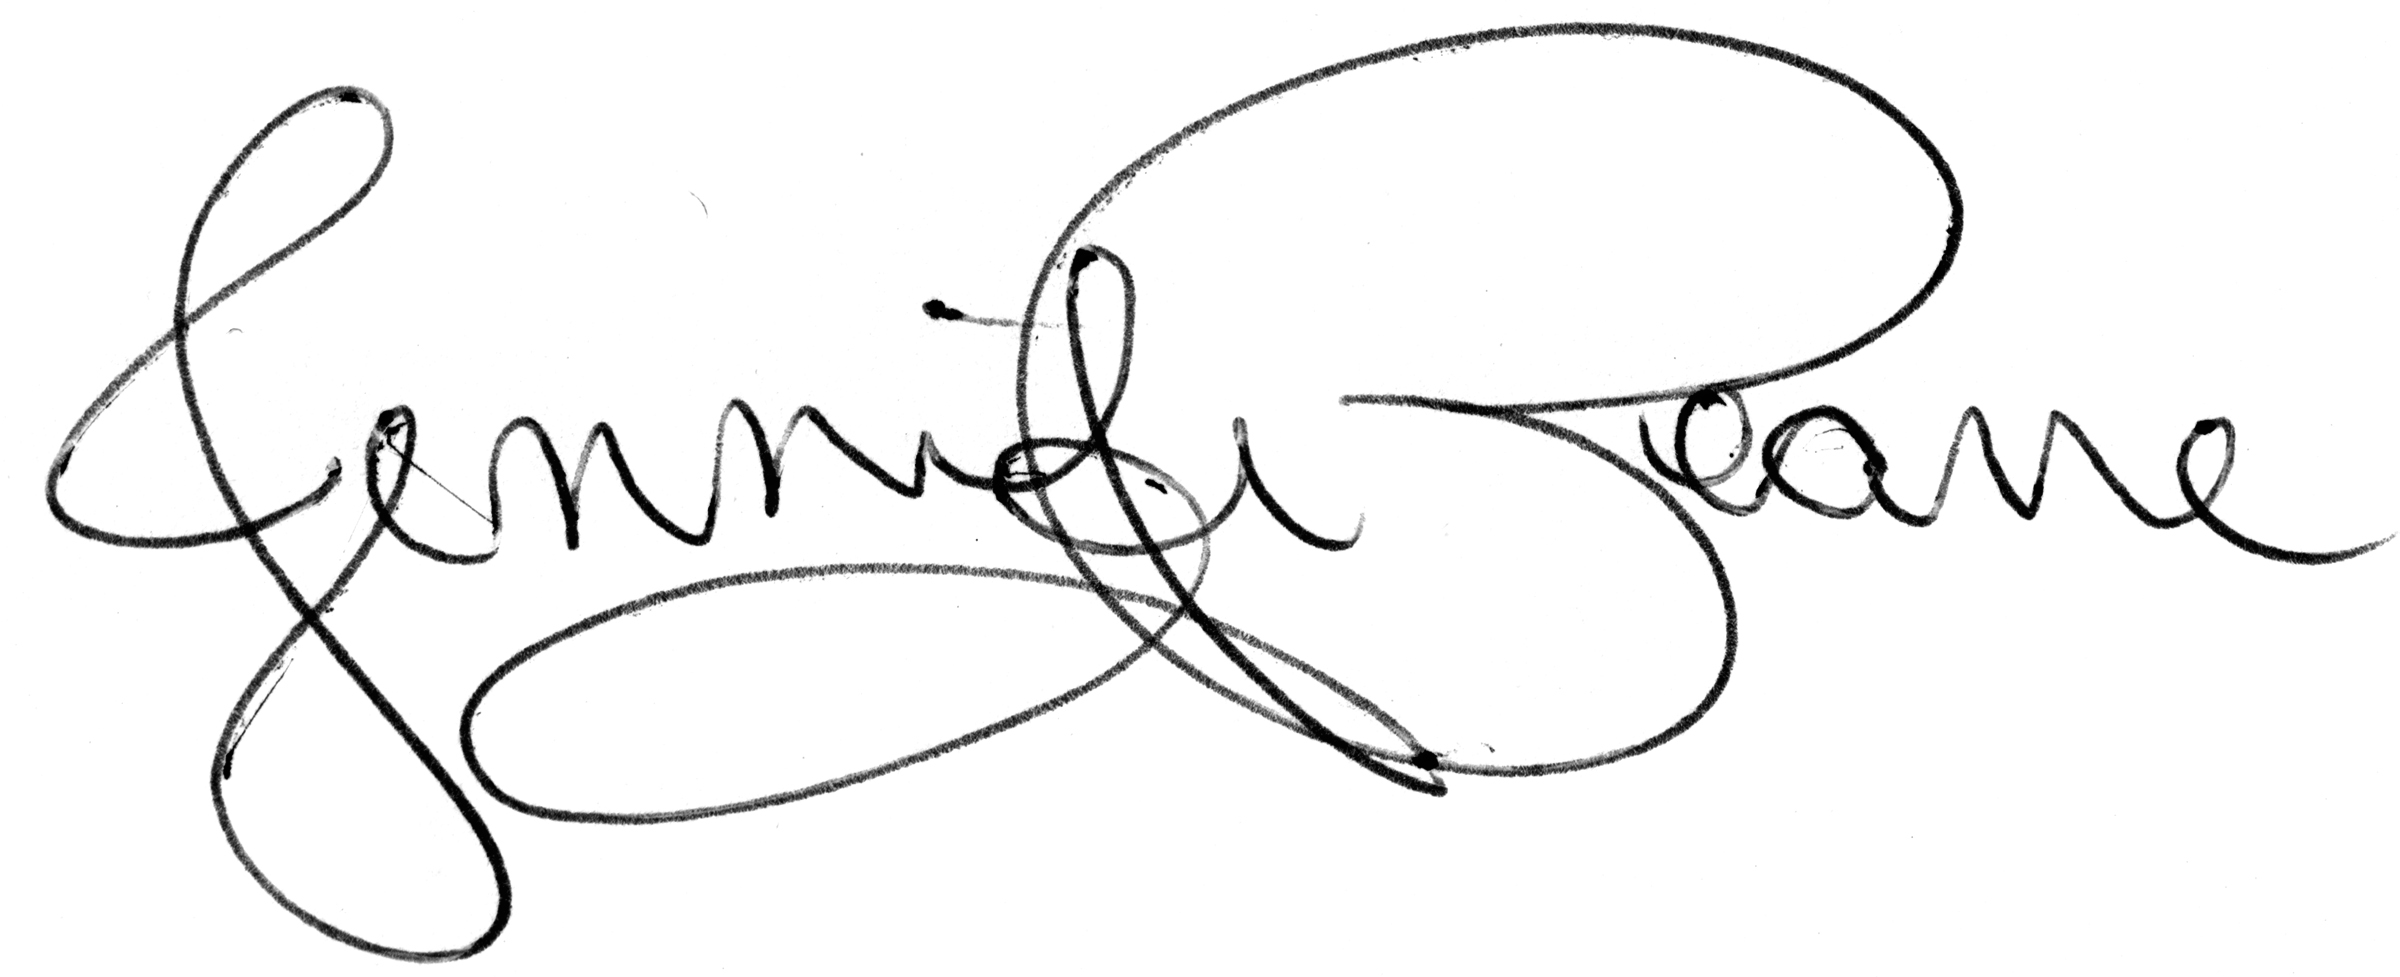 Jennifer Pearre's Signature